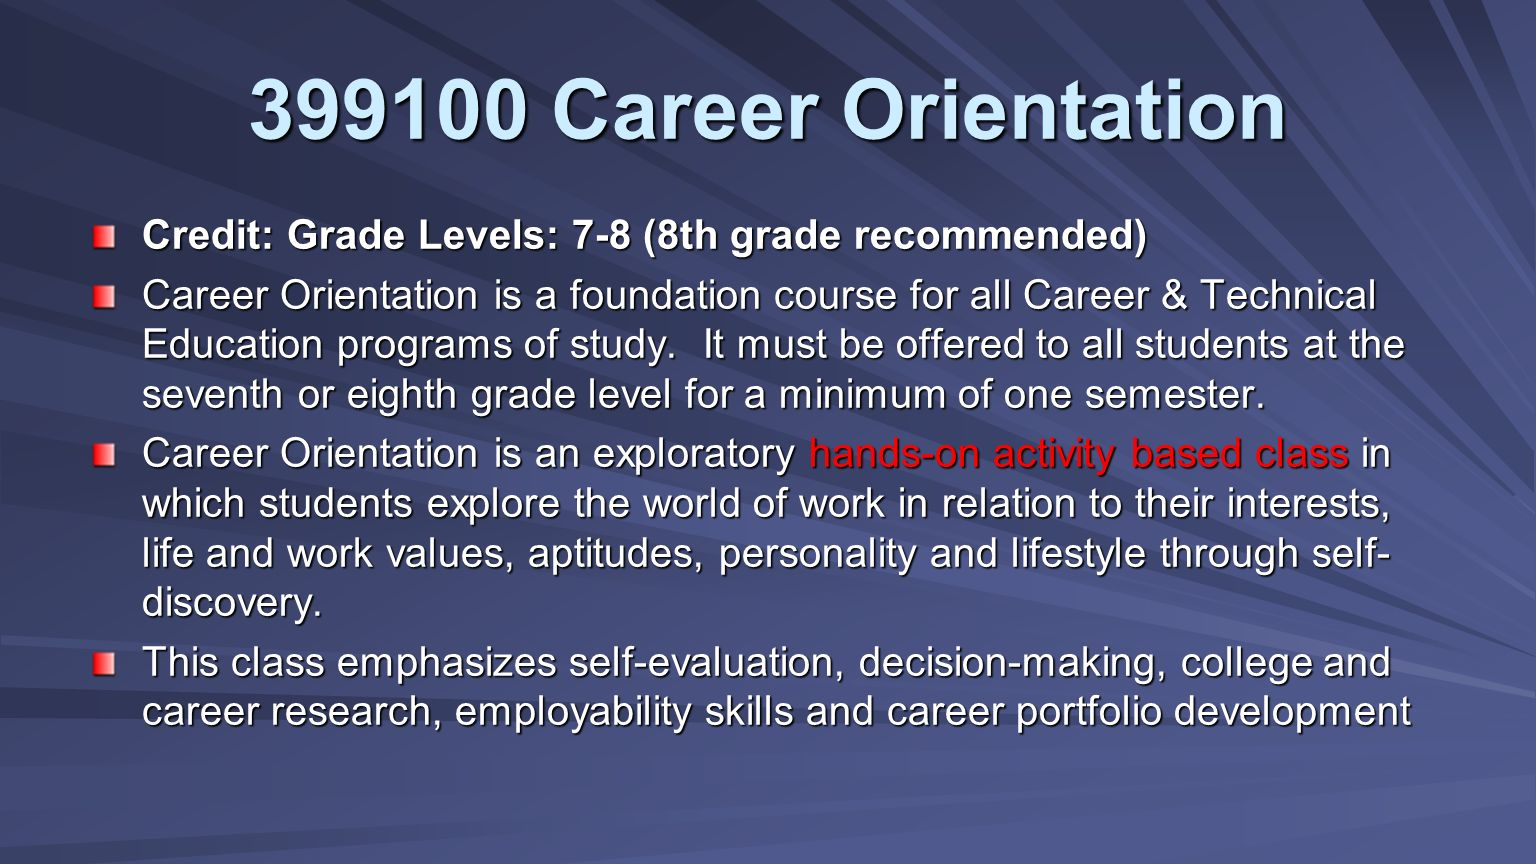 Credit: Grade Levels: 7-8 (8th grade recommended) Career Orientation is a foundation course for all Career & Technical Education programs of study.